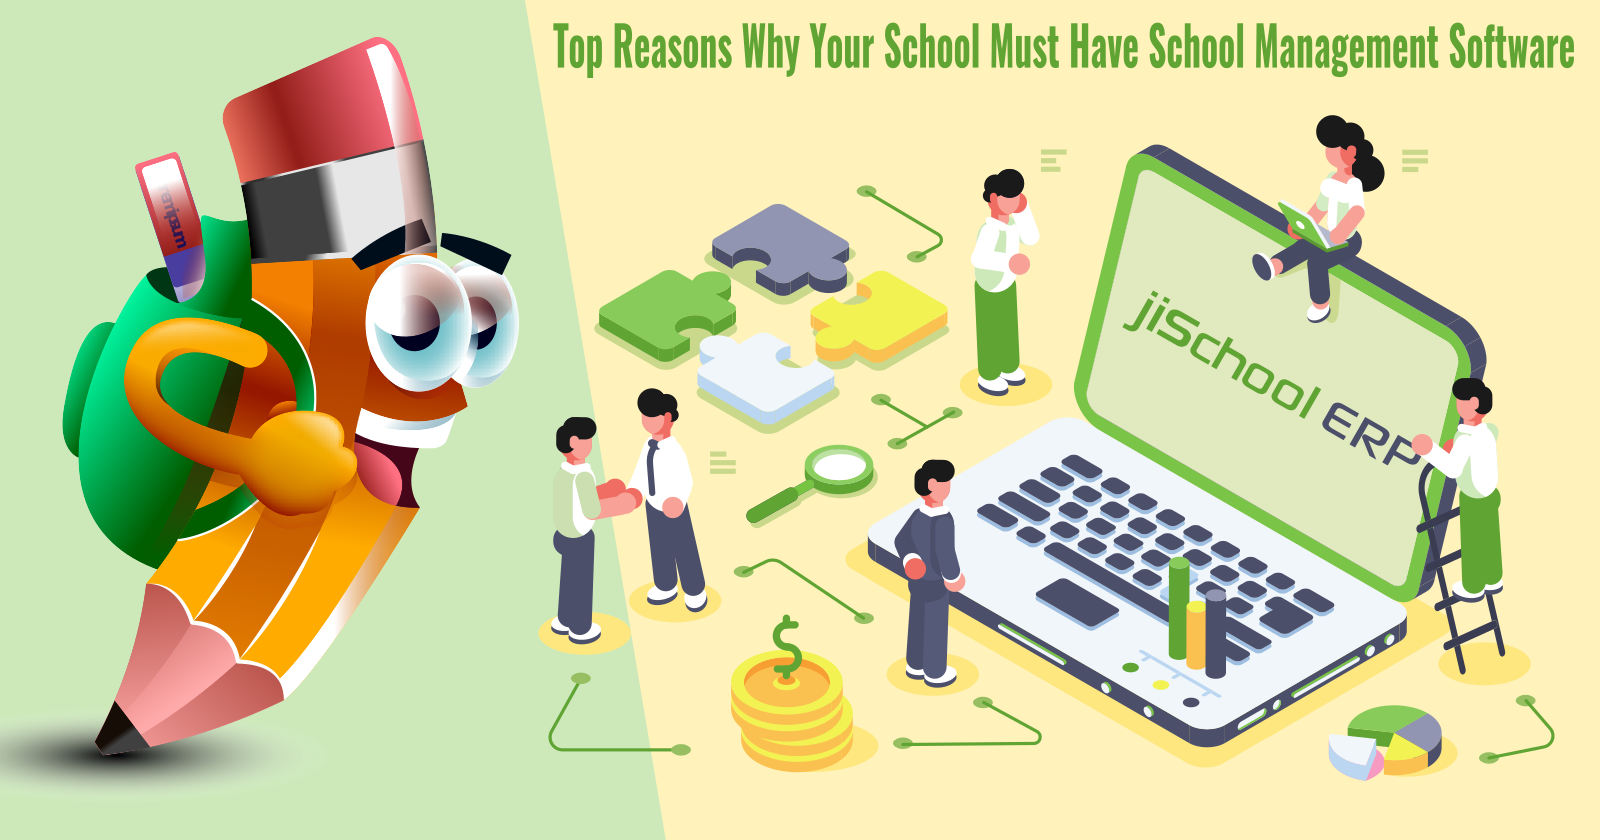 Top Reasons Why Your School Must Have School Management Software